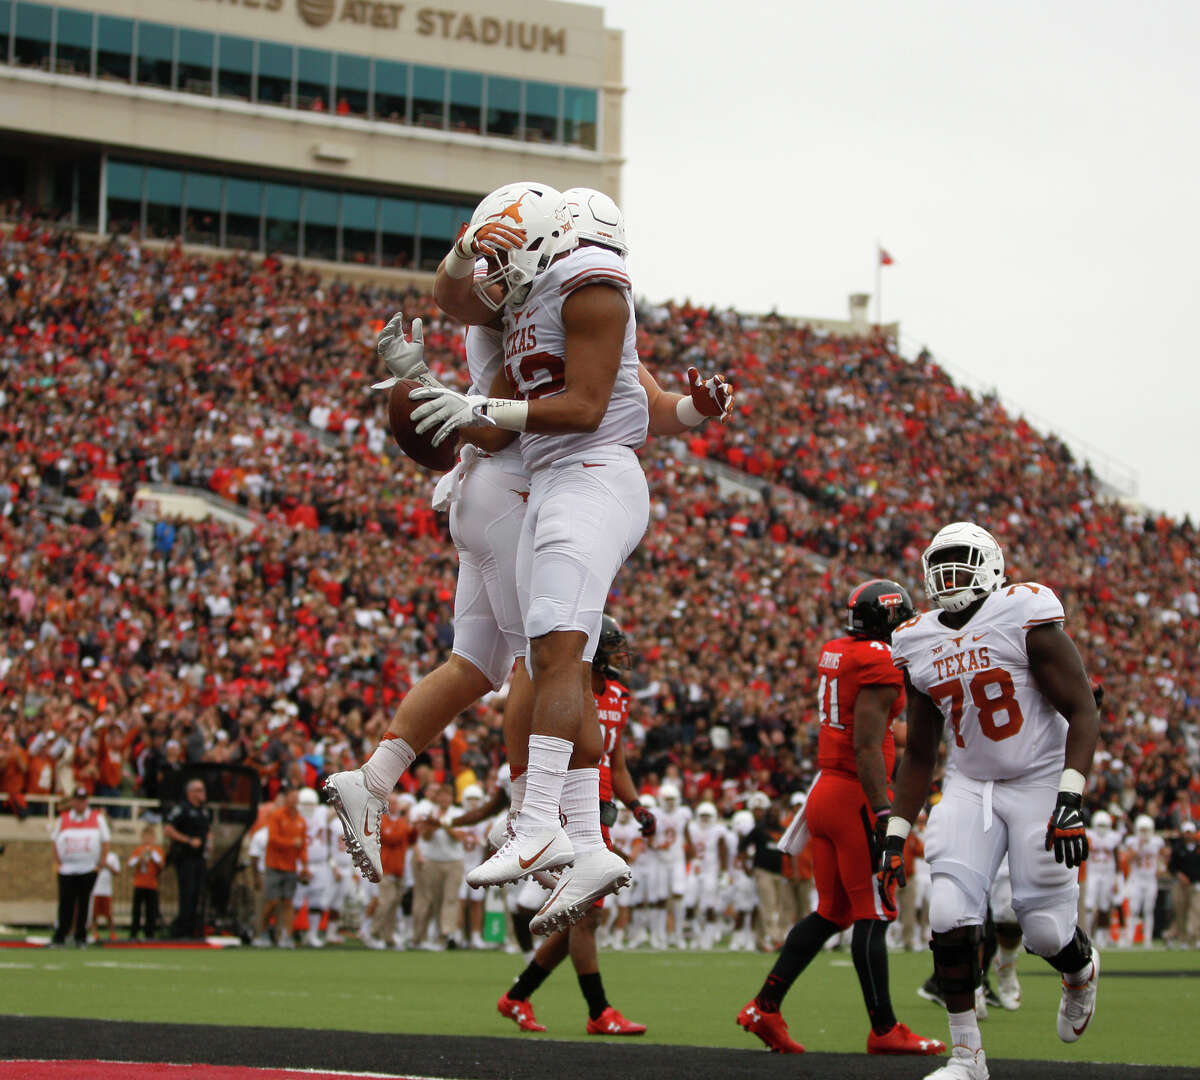 Texas' Andrew Beck celebrates with tight end Caleb Bluiett after Bluiett scored in the second quarter of an NCAA college football game against Texas Tech, Saturday, Nov. 5, 2016, in Lubbock, Texas. (Mark Rogers/Lubbock Avalanche-Journal via AP)